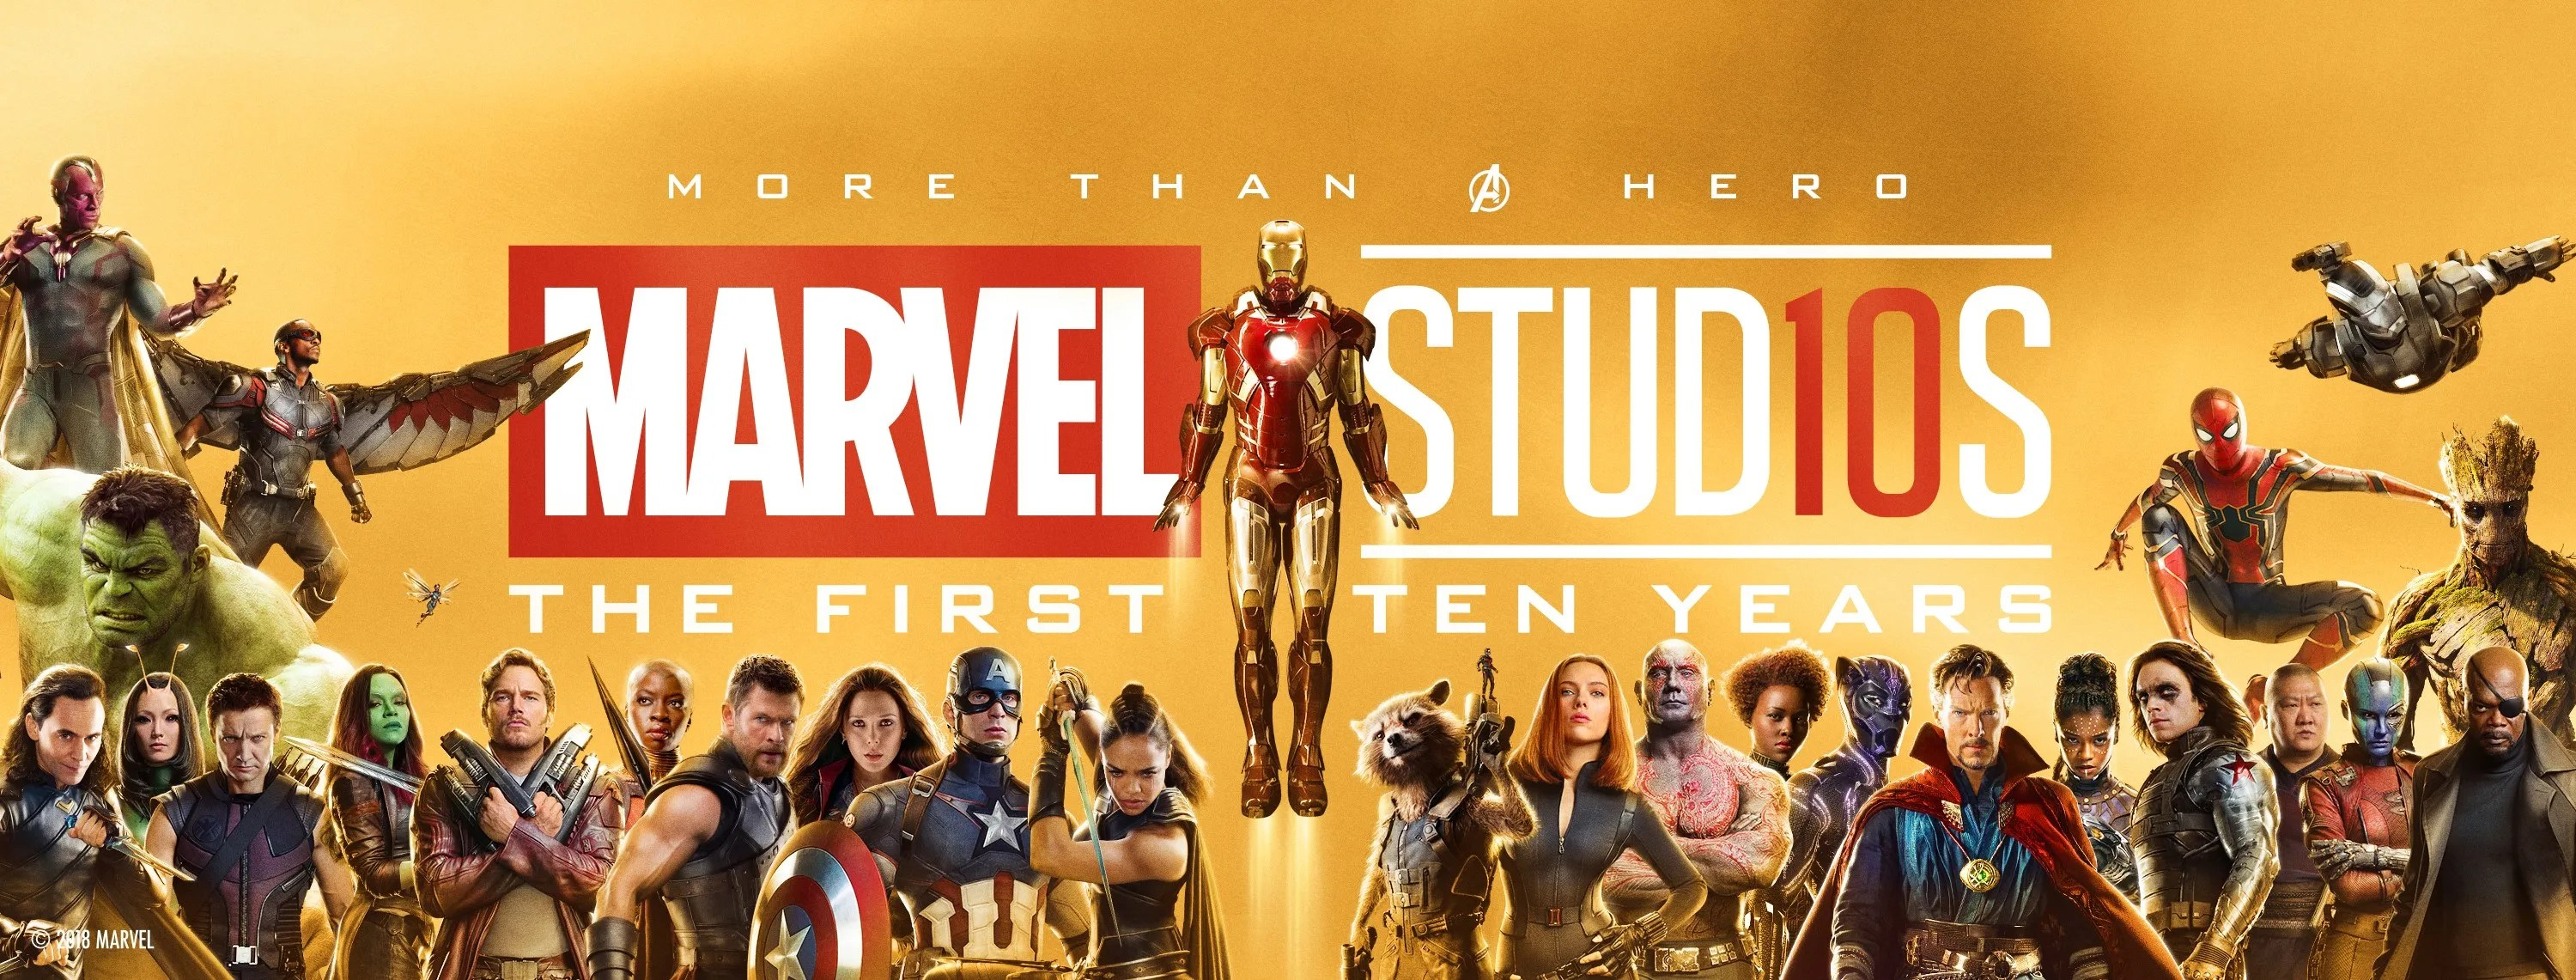 Marvel Studios 10th anniversary banner arrives in Times ...